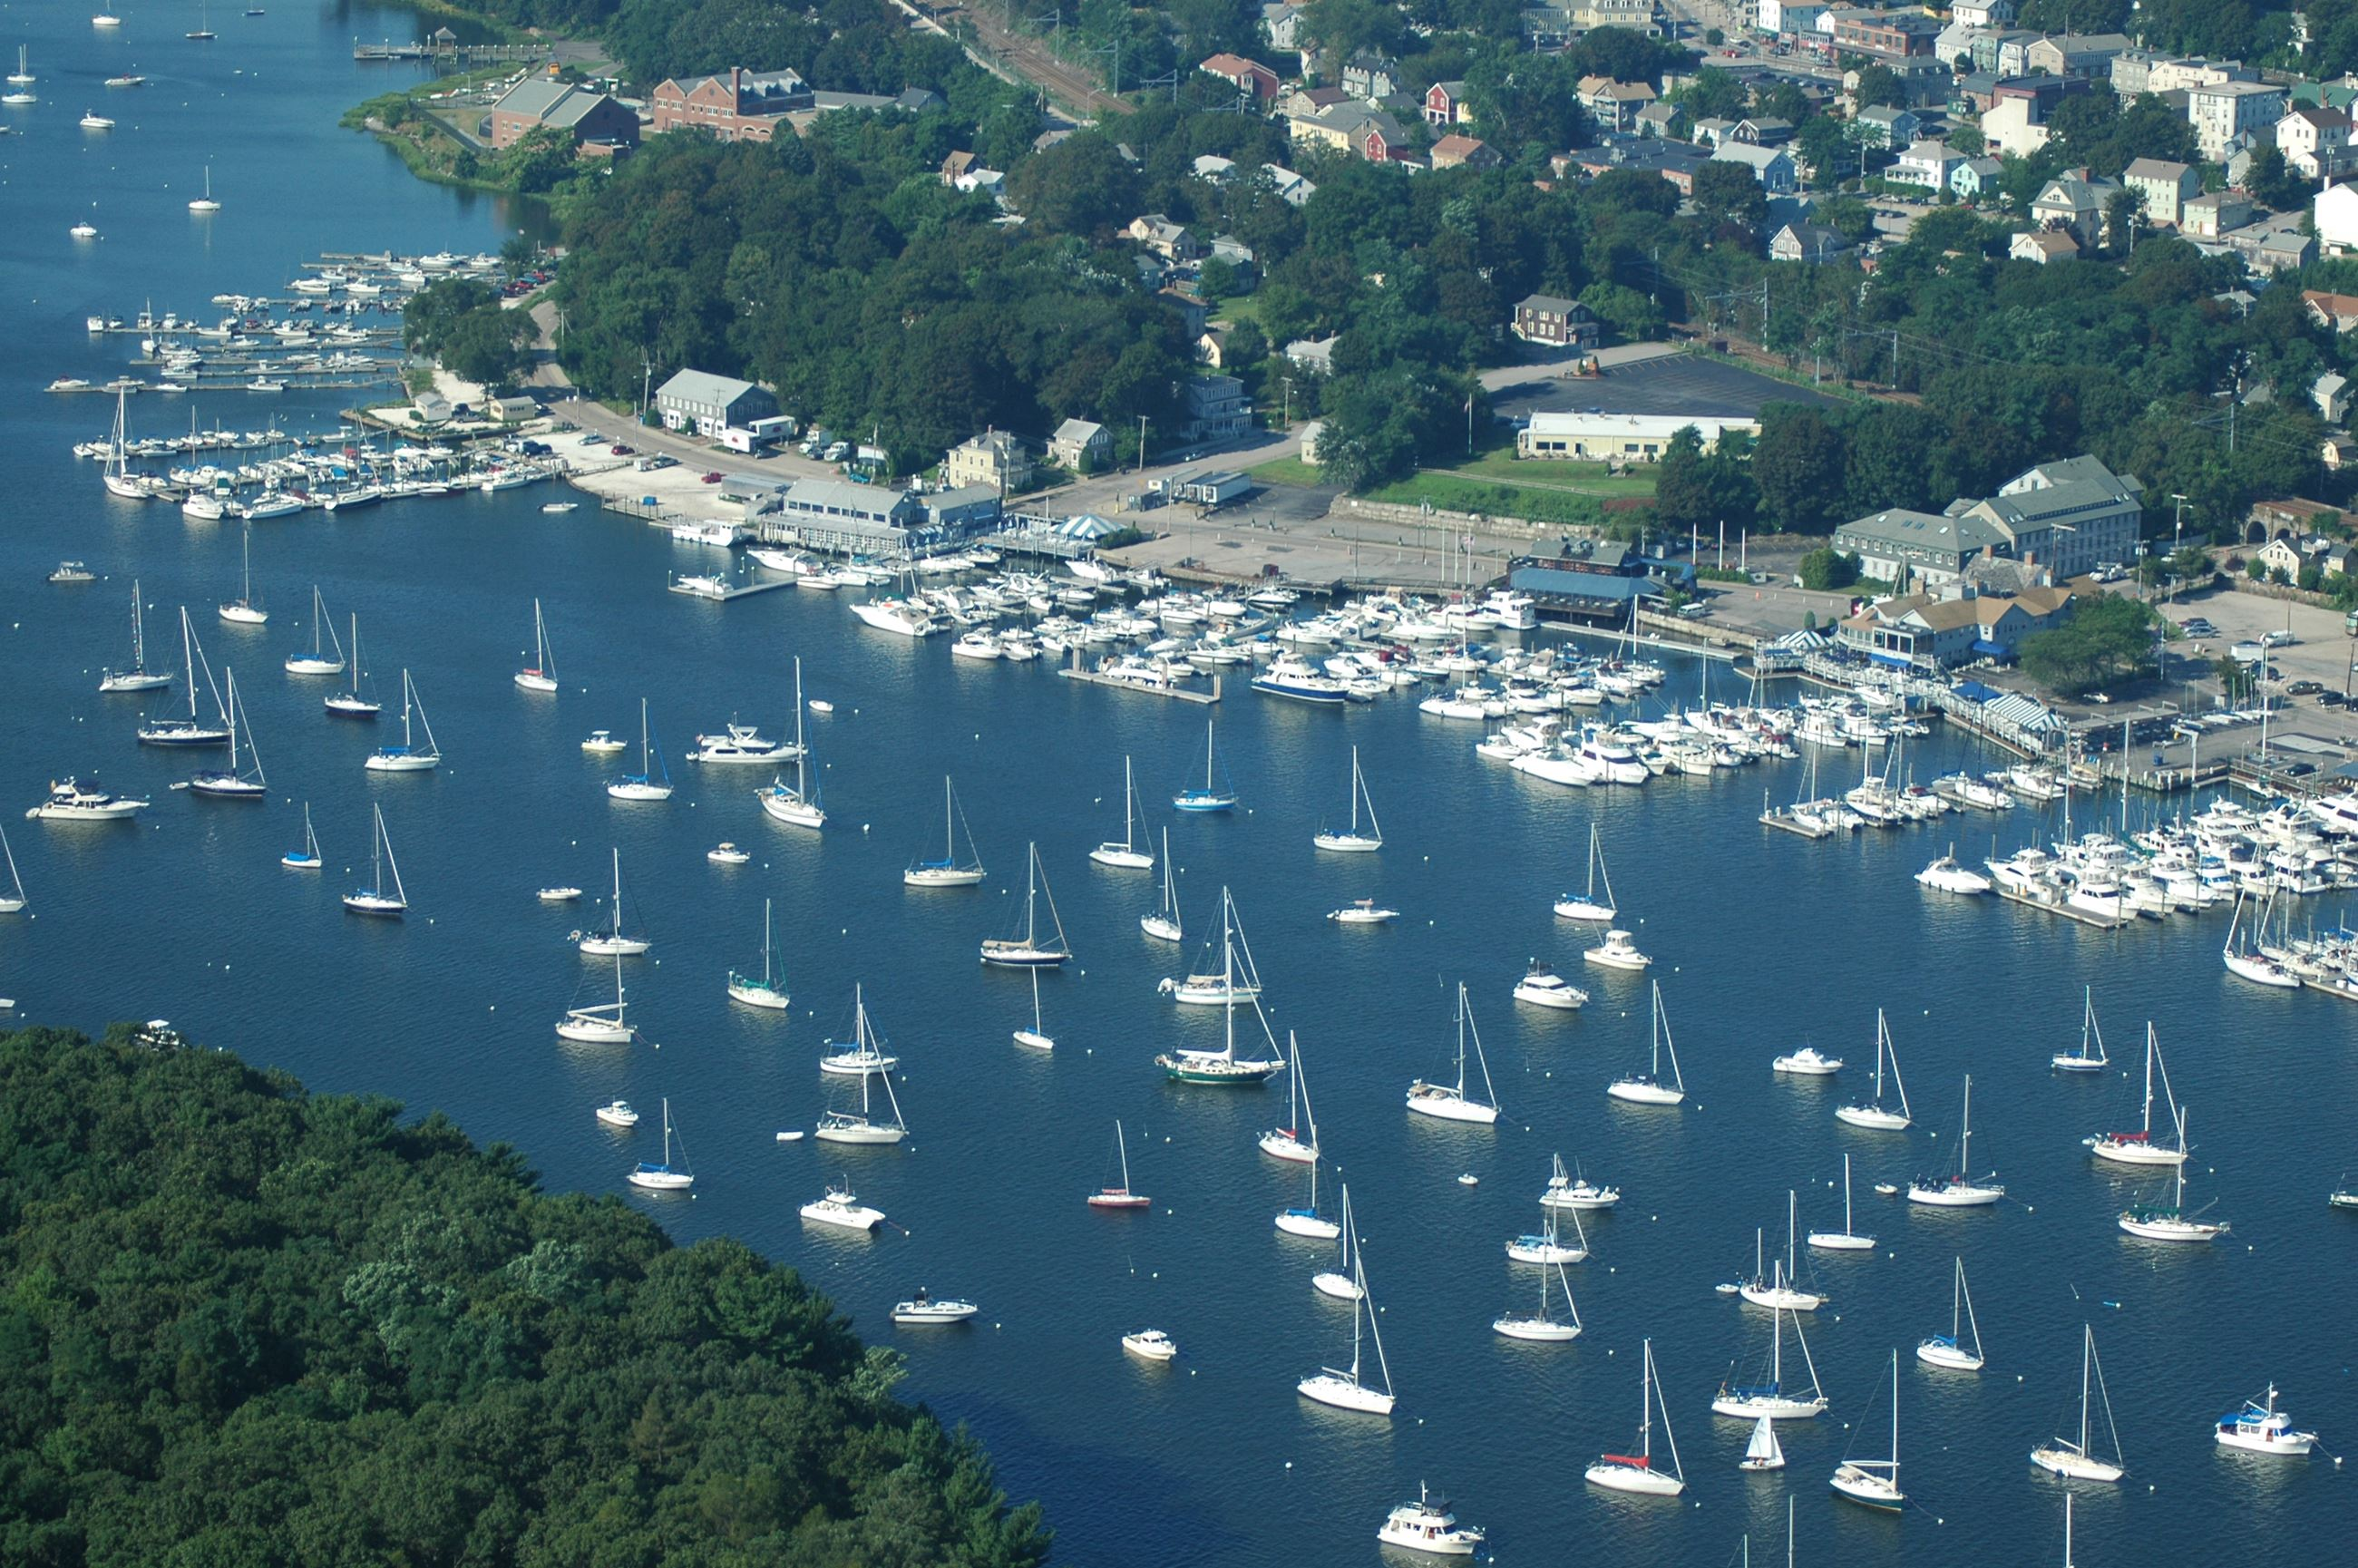 Aerial Image of Greenwich Cove